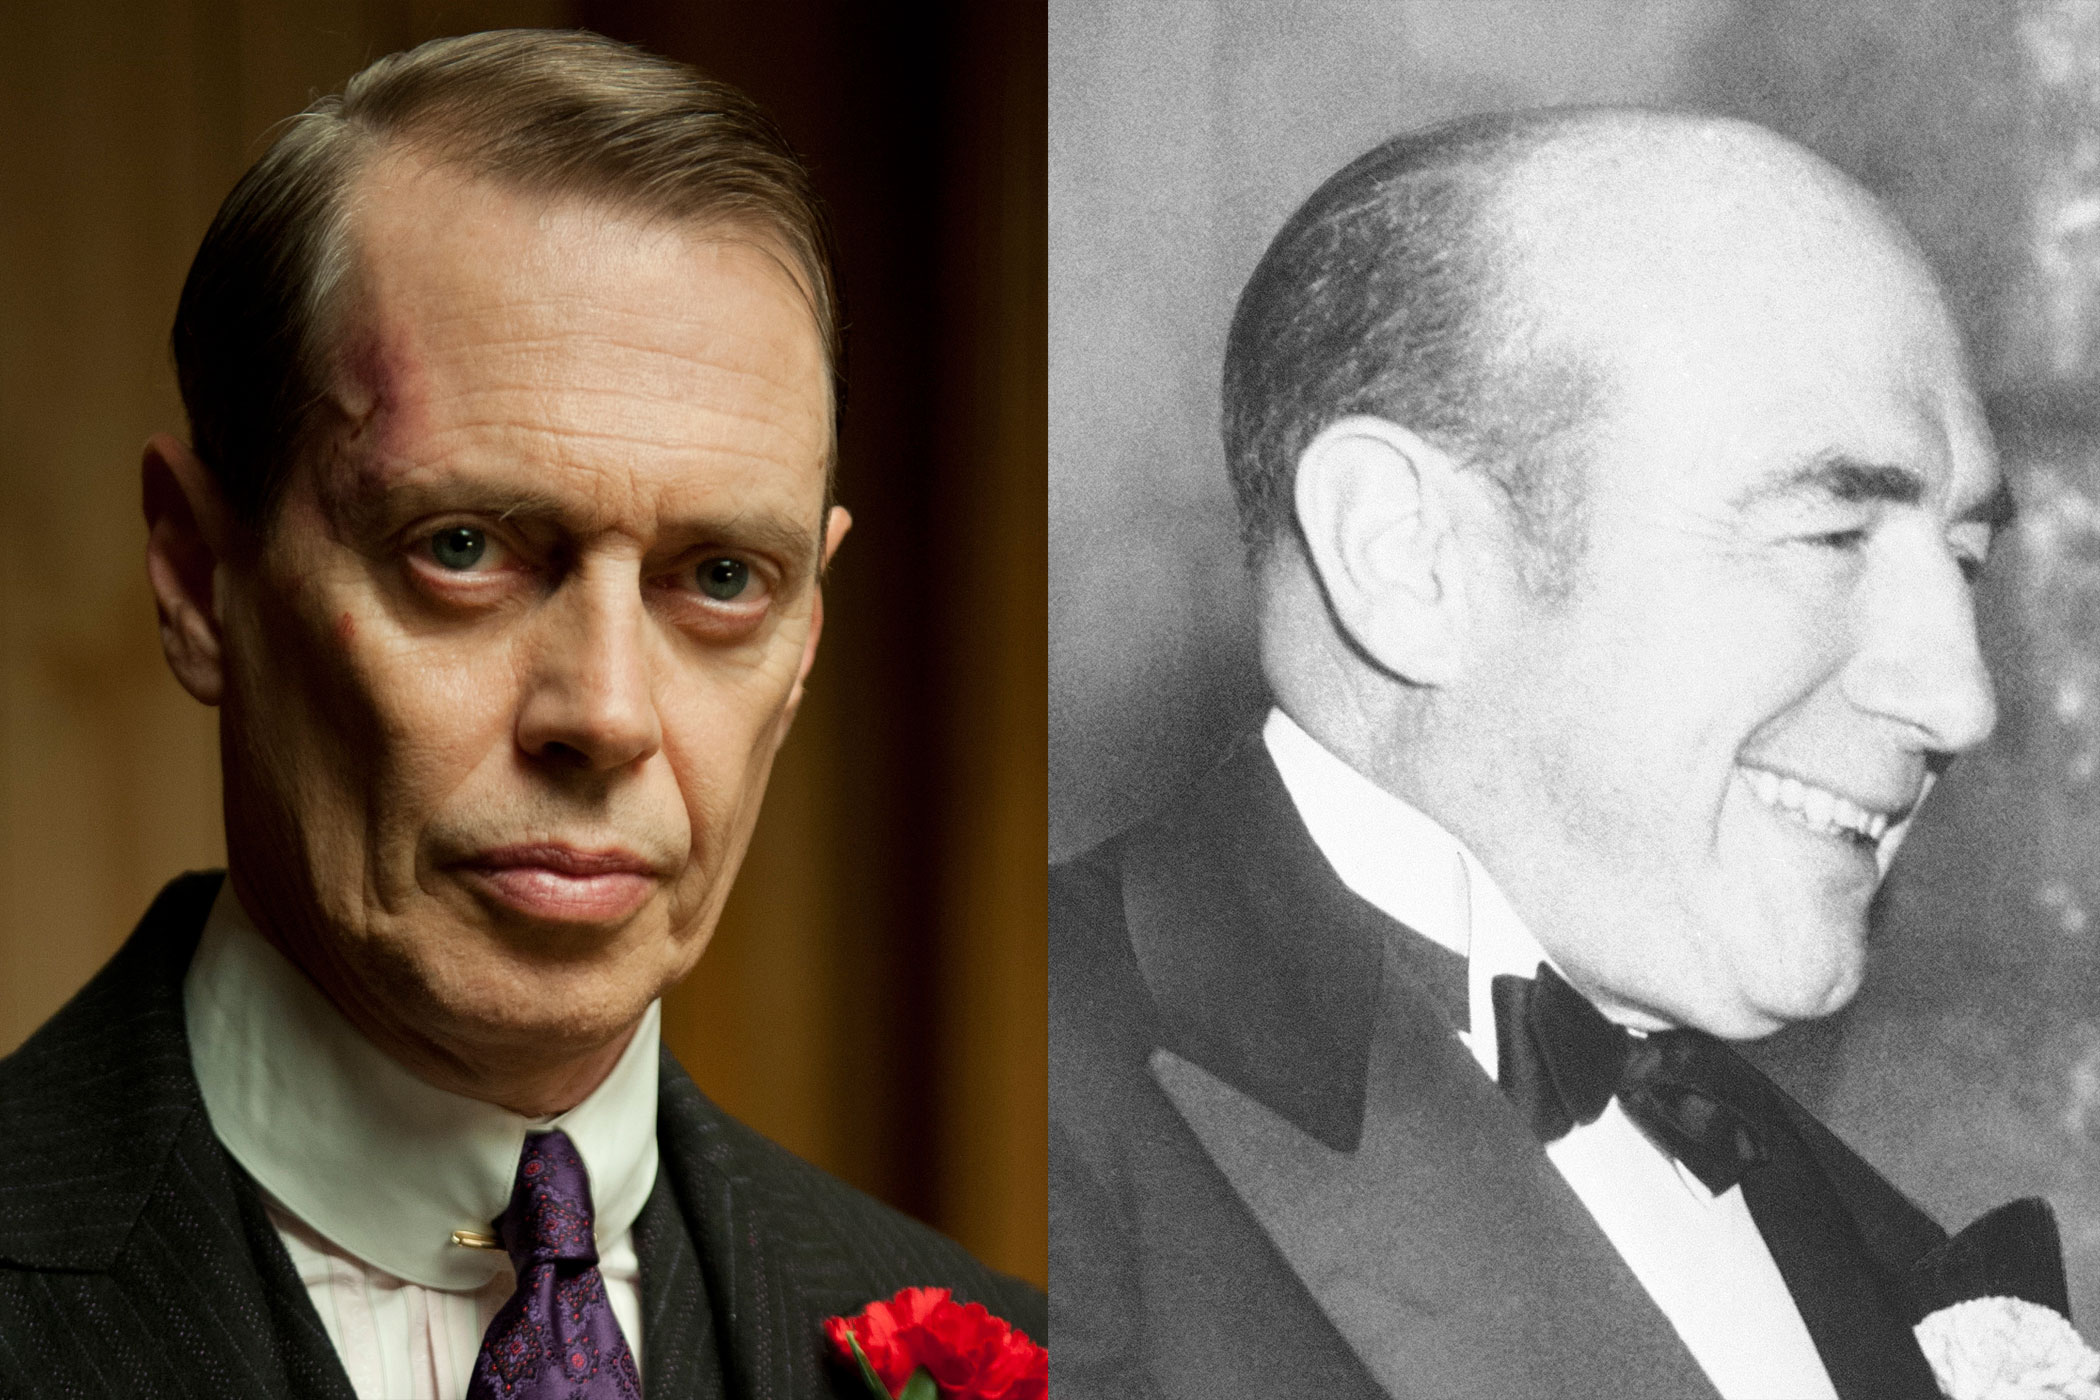 Enoch  Nucky  Thompson:                               Steve Buscemi's  Nucky  Thompson may be a murdering, bootlegging, Machiavellian racketeer, but his real life equivalent, Atlantic City Republican Enoch L.  Nucky  Johnson, was more modest: a near lifelong teetotaler, he still saw fit to take cuts from local bootlegger profits and managed to land ten years in prison for tax evasion.